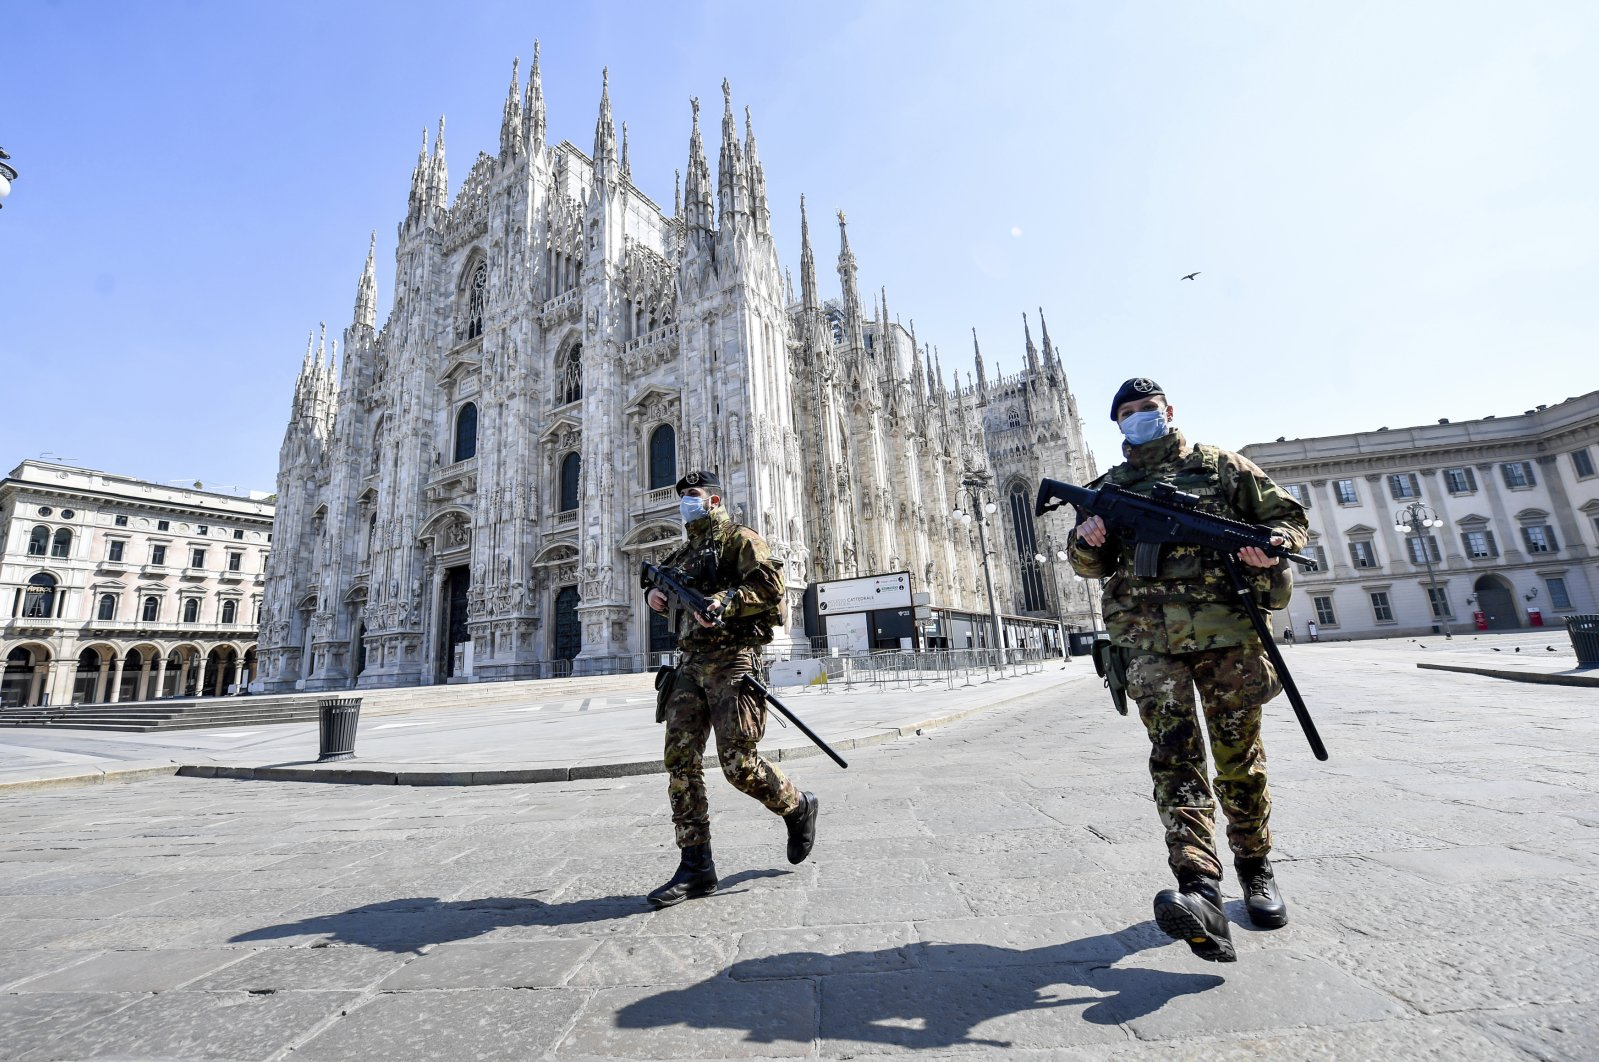 Soldiers patrol in front of the Duomo gothic cathedral in Milan, Italy, Sunday, April 5, 2020. (AP Photo)